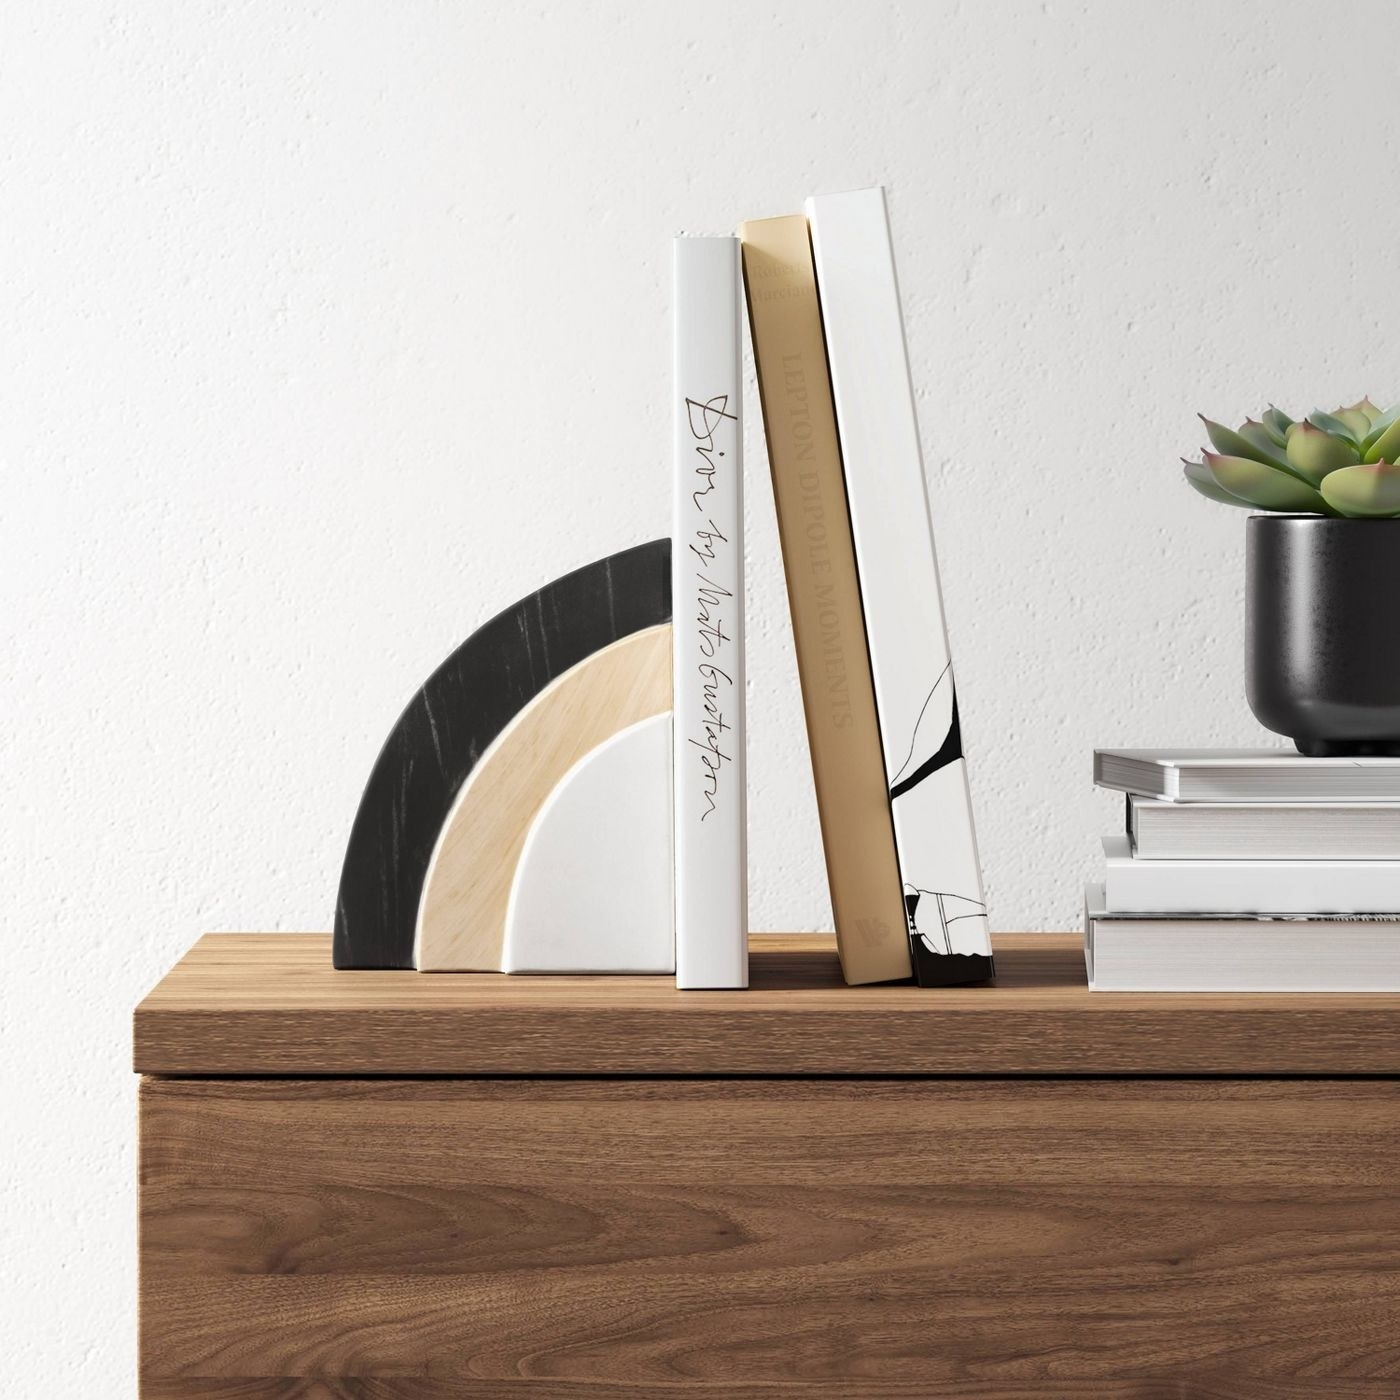 rounded book end with a layer of white, layer of light tan, and a layer of black holding up some books